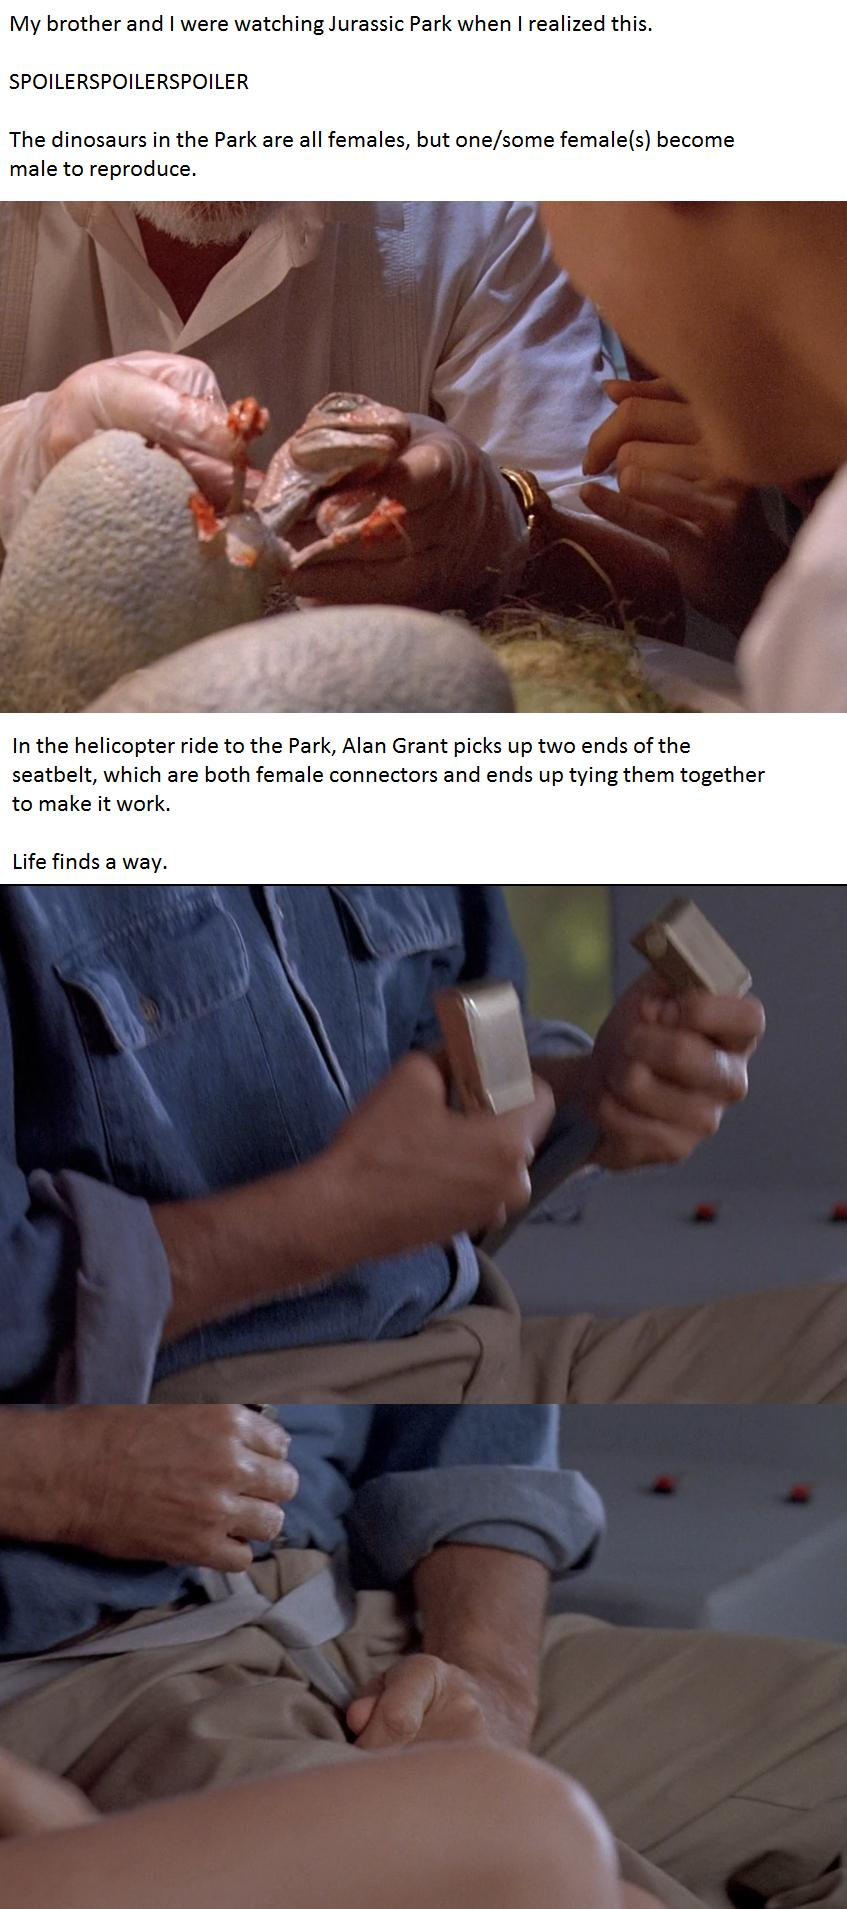 jurassic park life finds a way